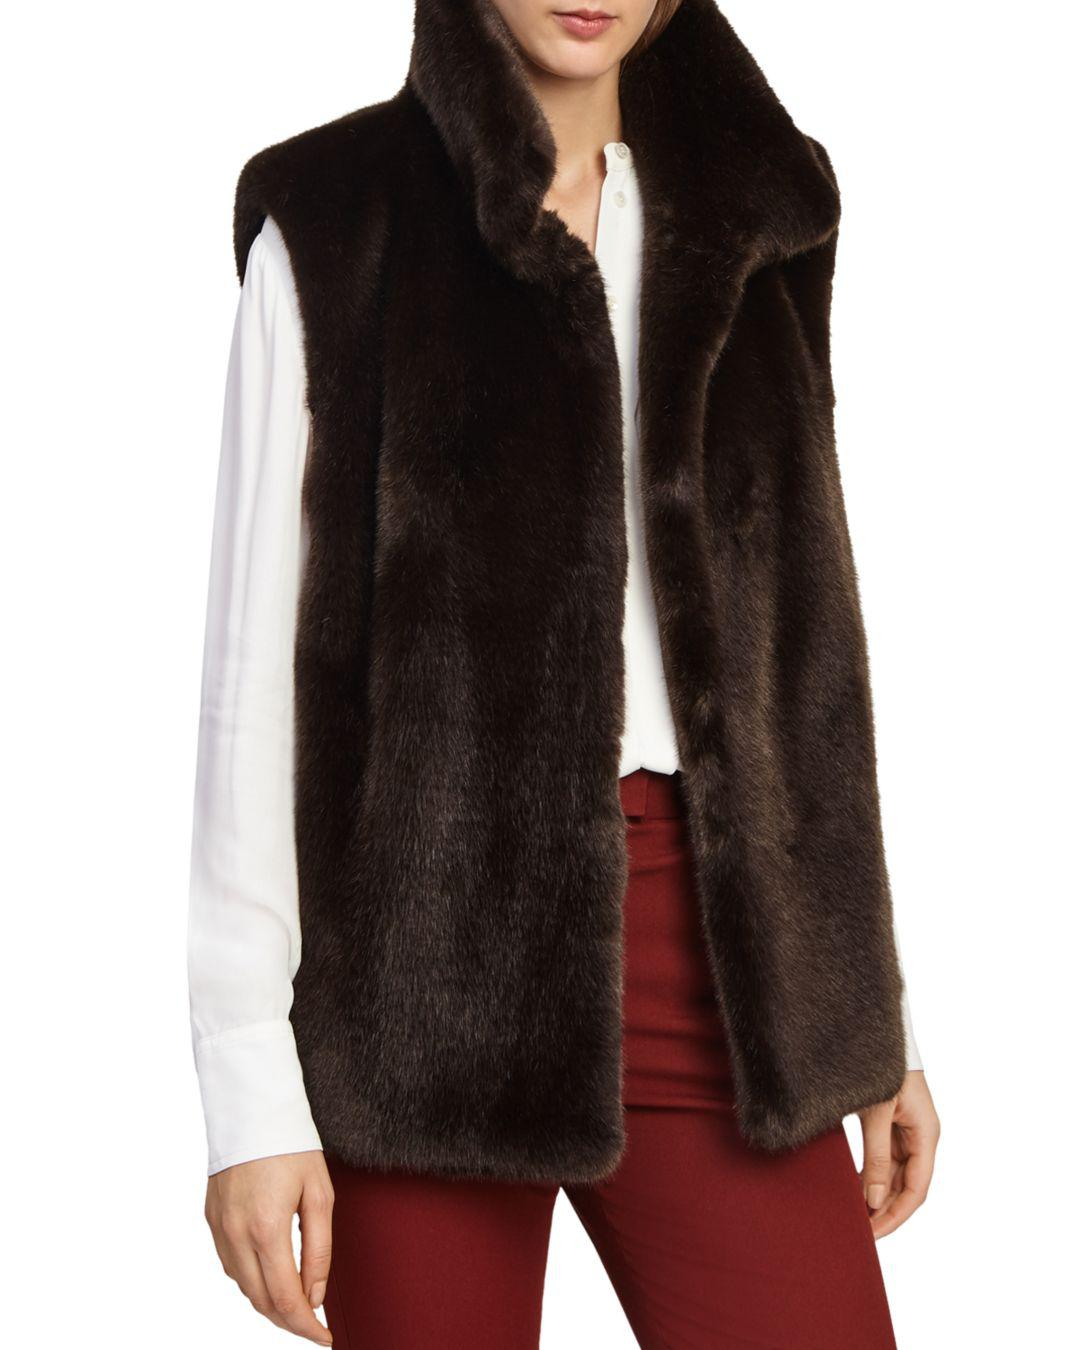 Lyst - Reiss Fay Faux-fur Vest in Brown accf77903436a